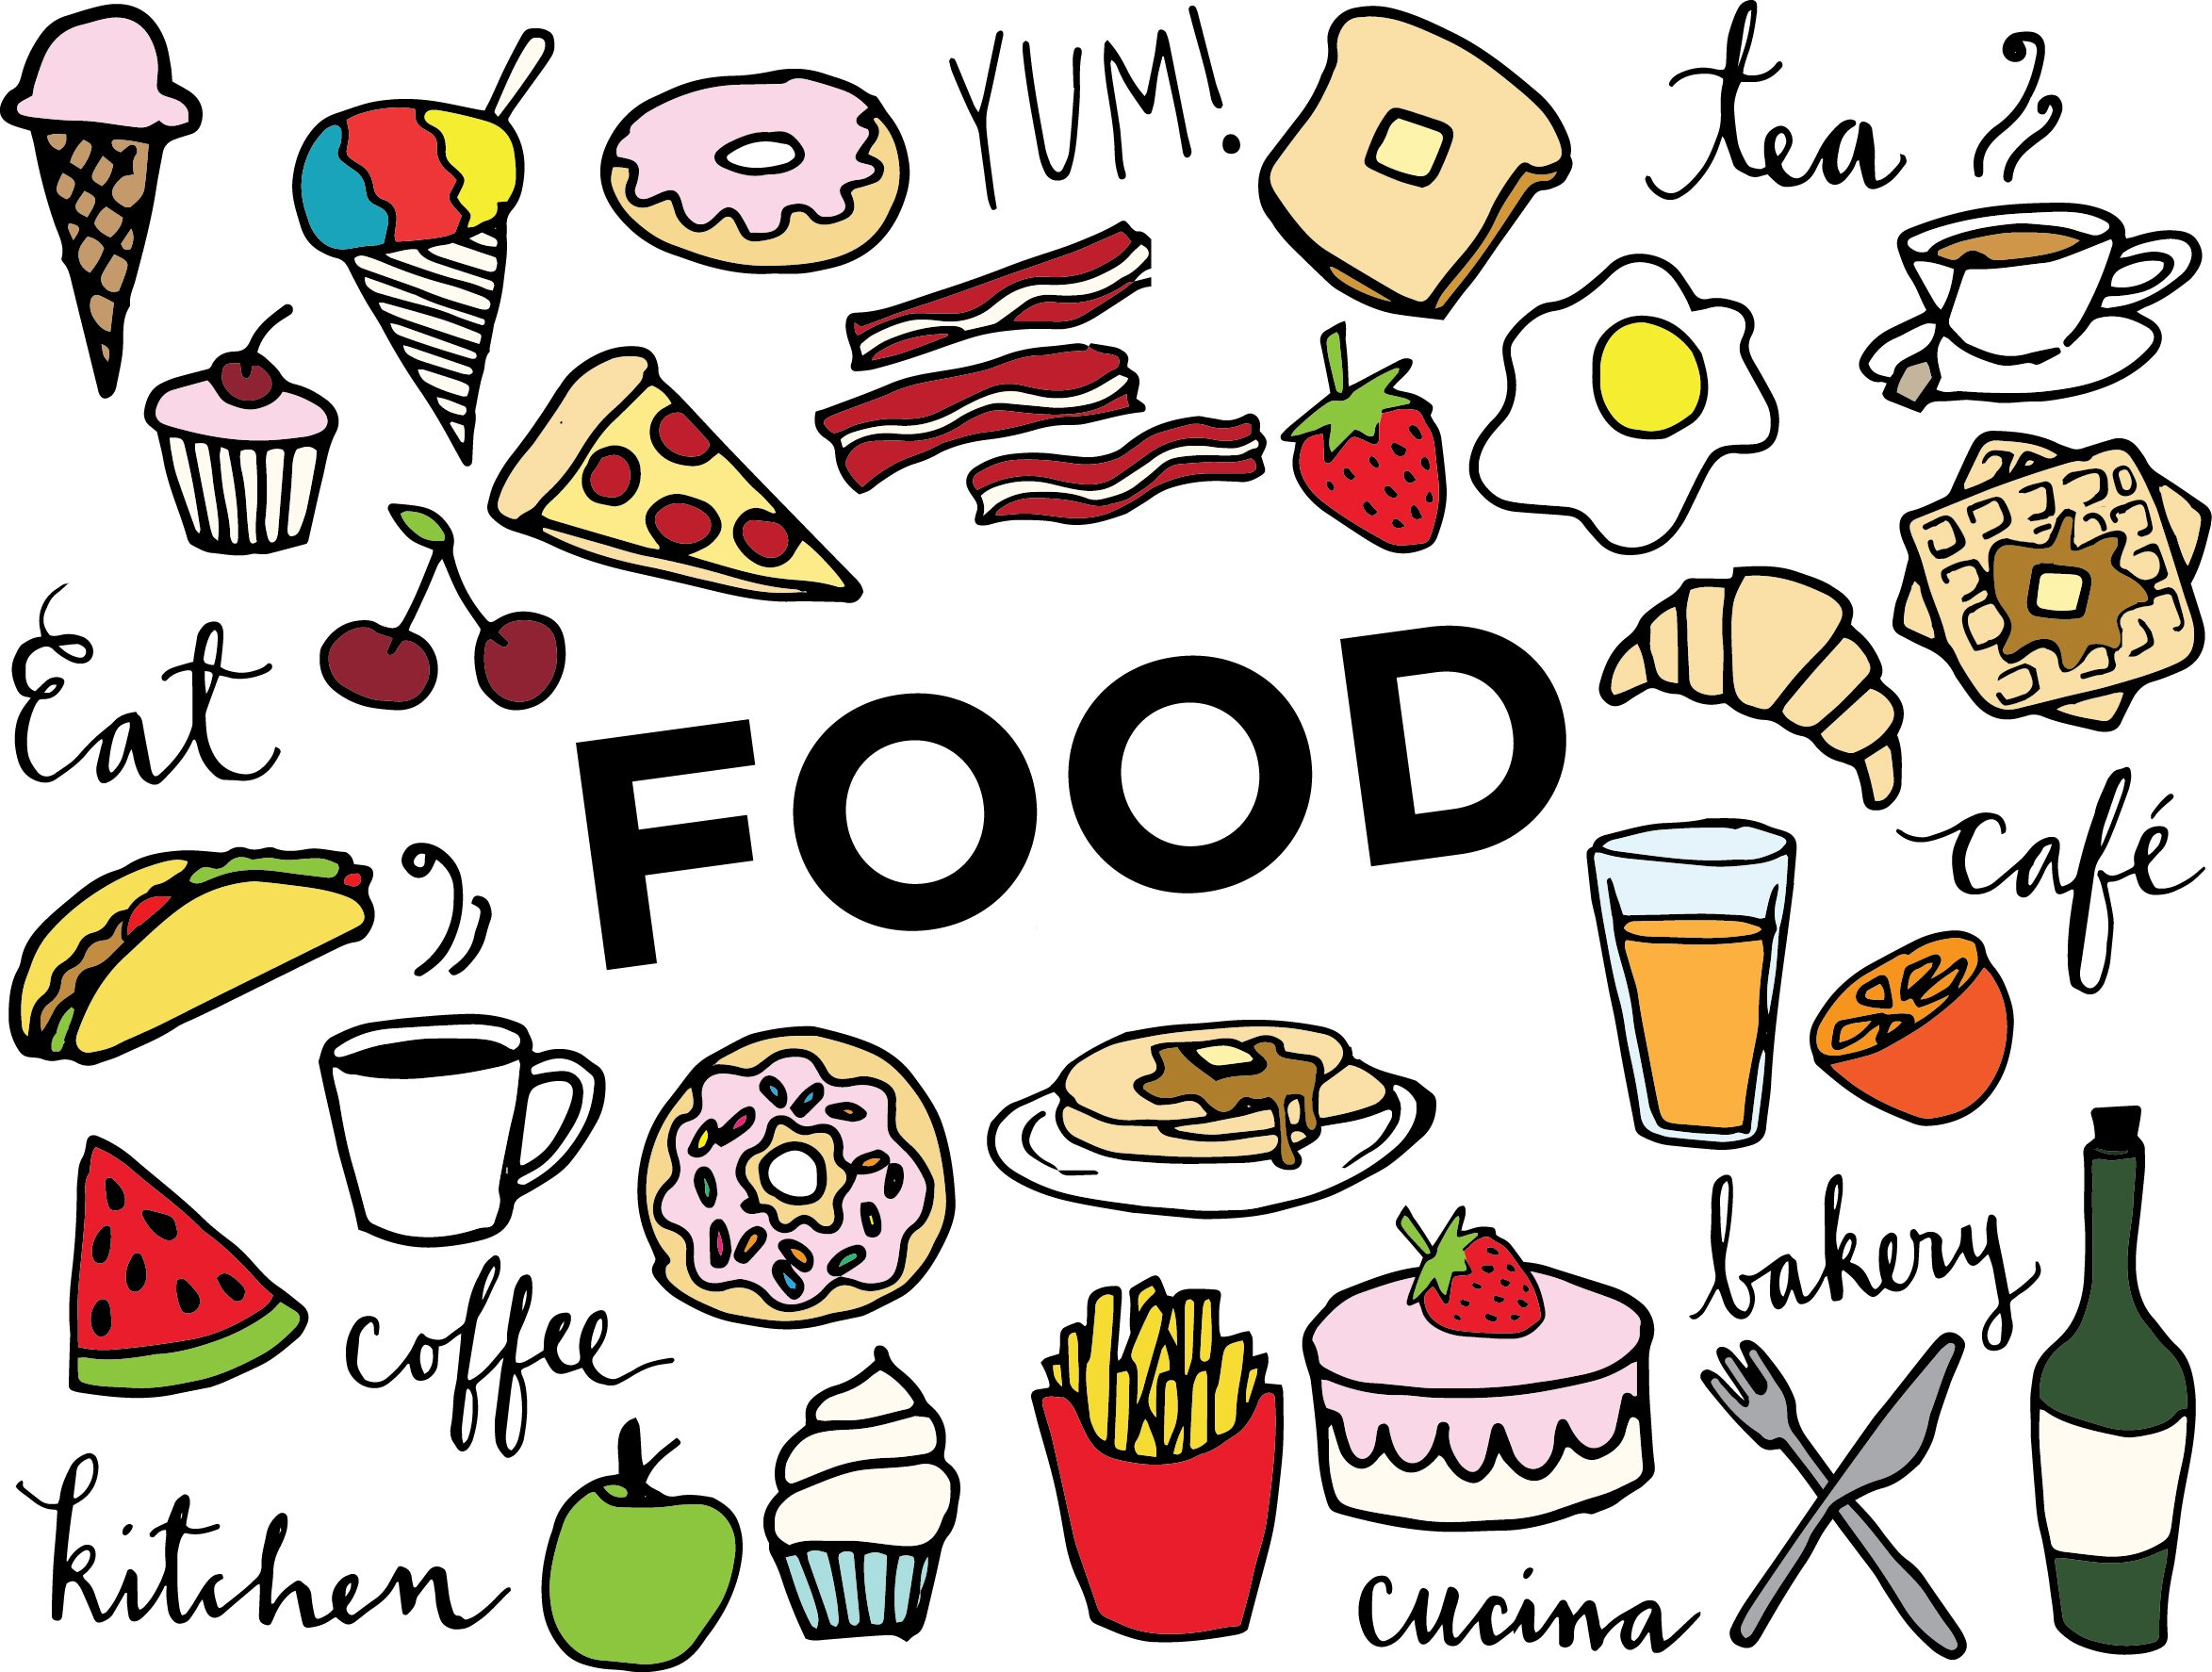 Abundance of food in colorful illustrations.